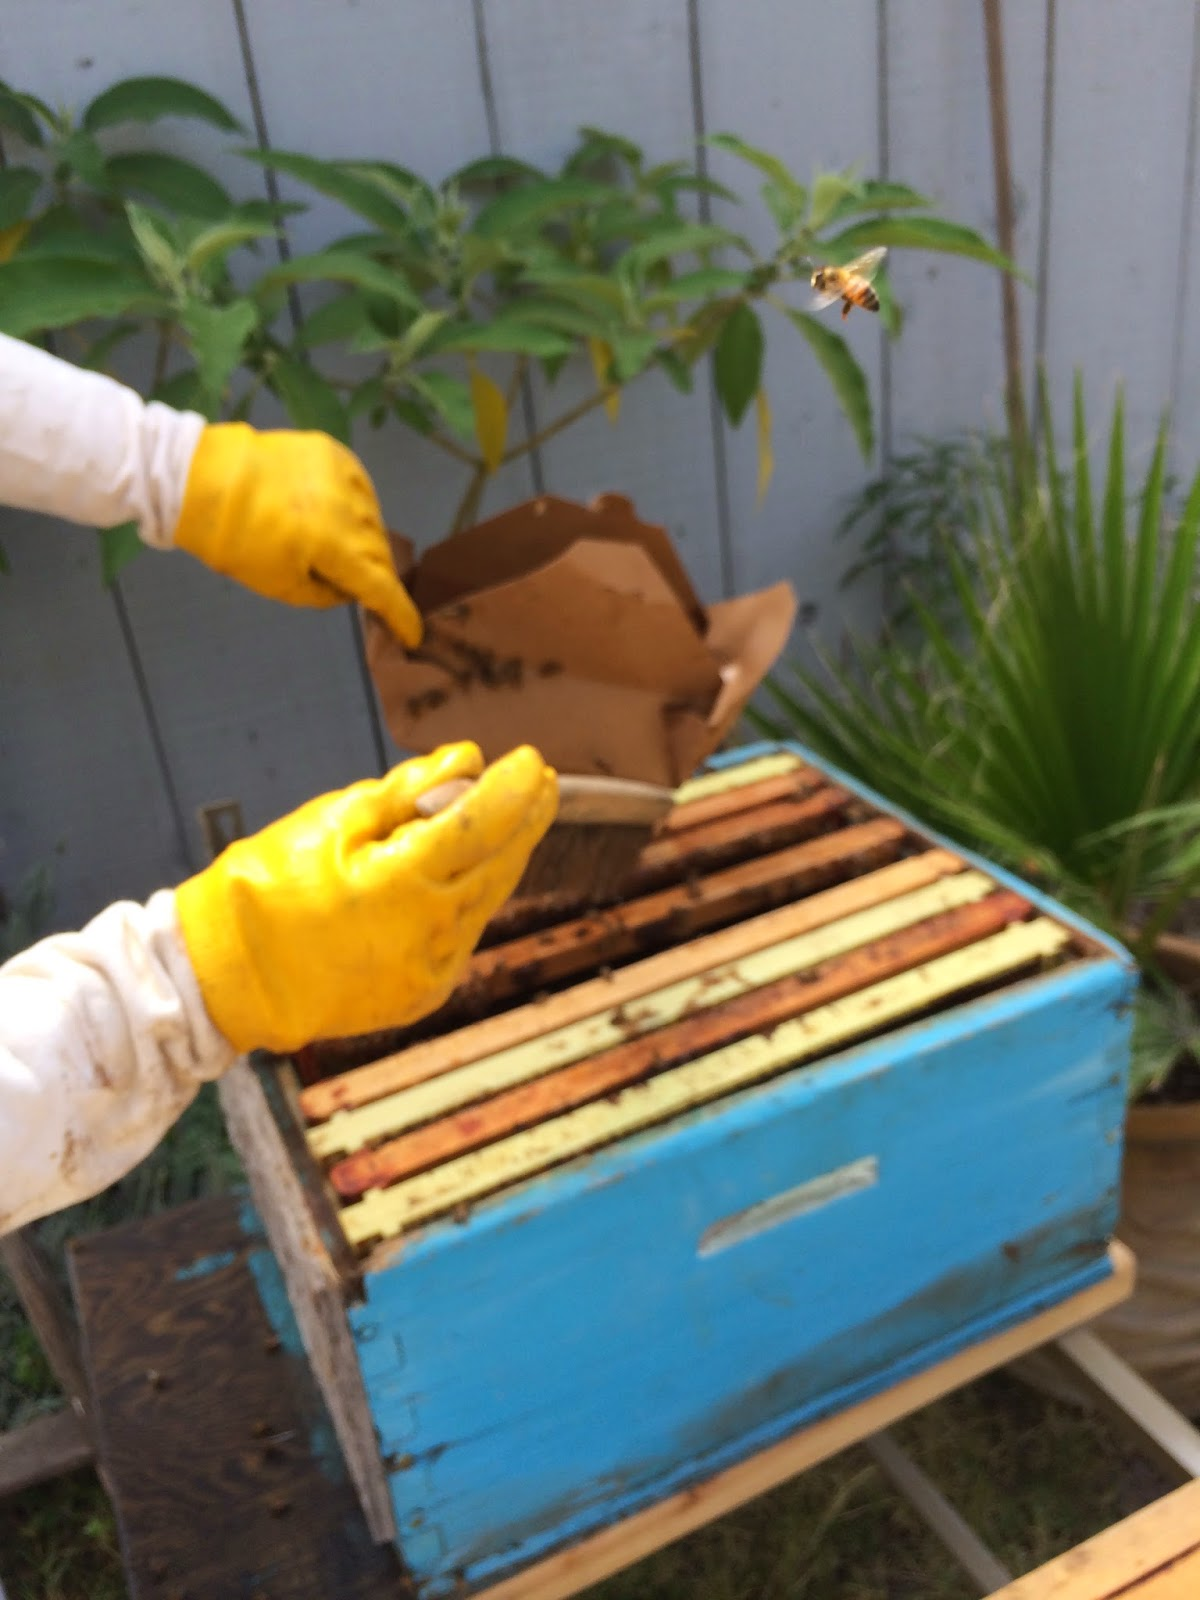 Transferring Bees to Bee Hive